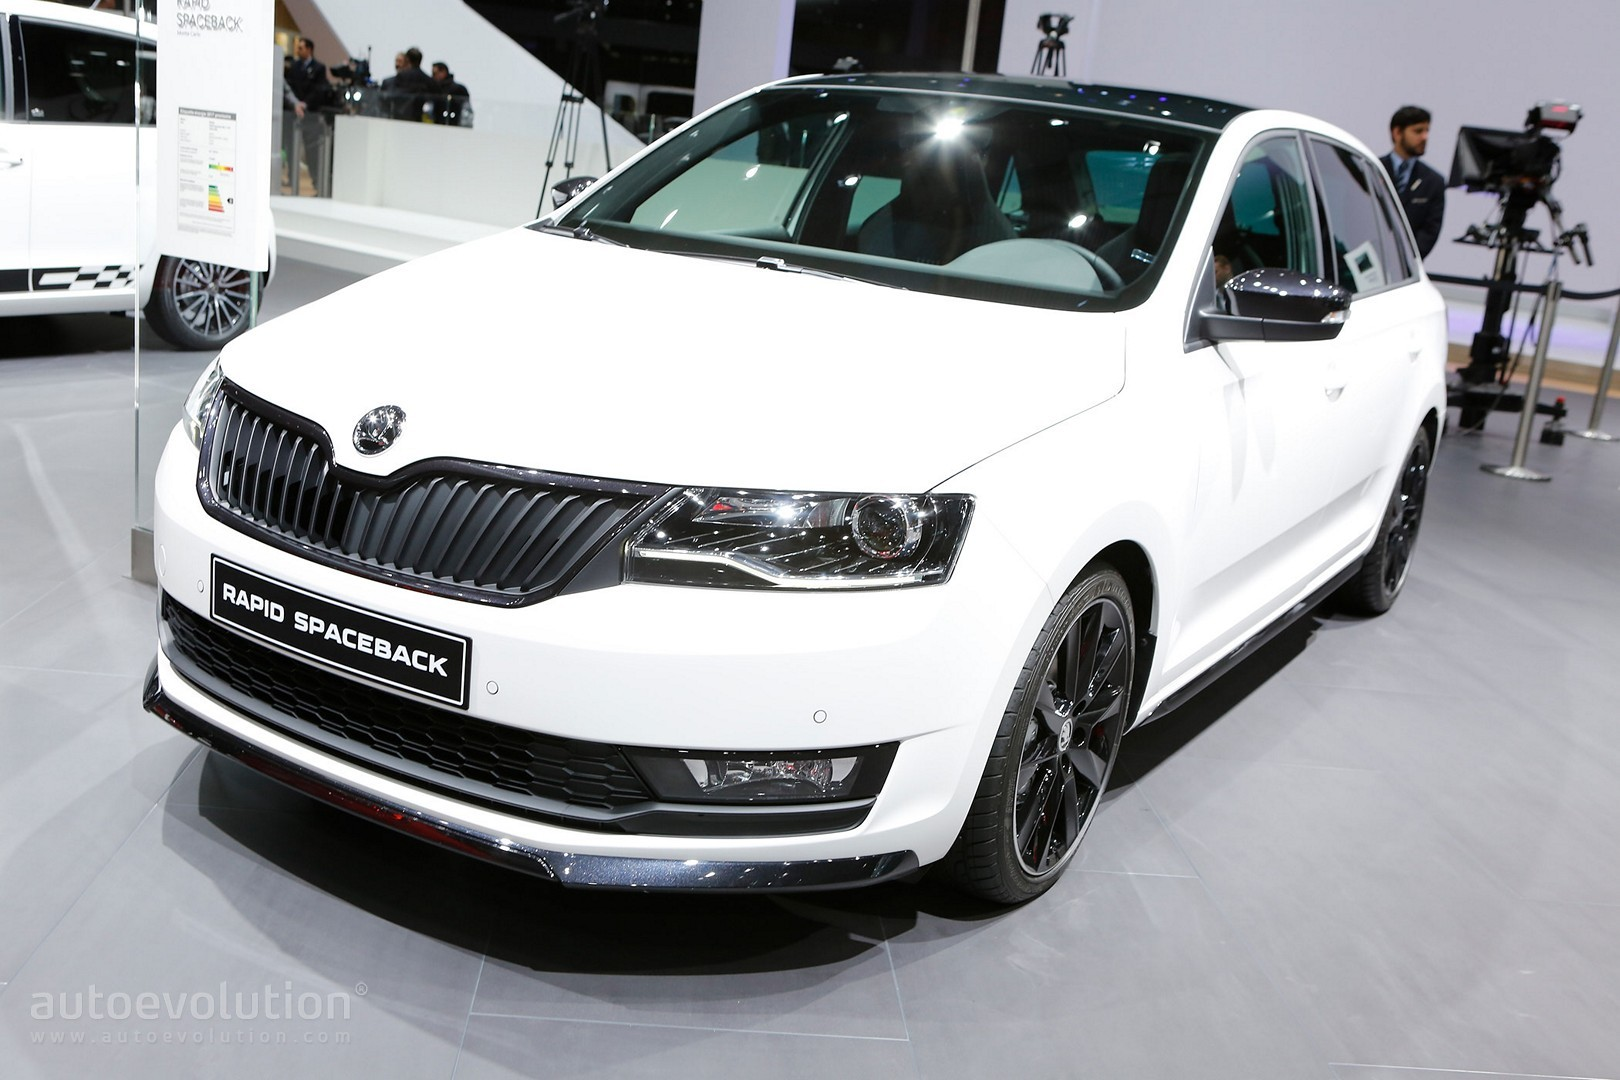 2017 skoda rapid sports new design details and 1 0 tsi engine in geneva autoevolution. Black Bedroom Furniture Sets. Home Design Ideas